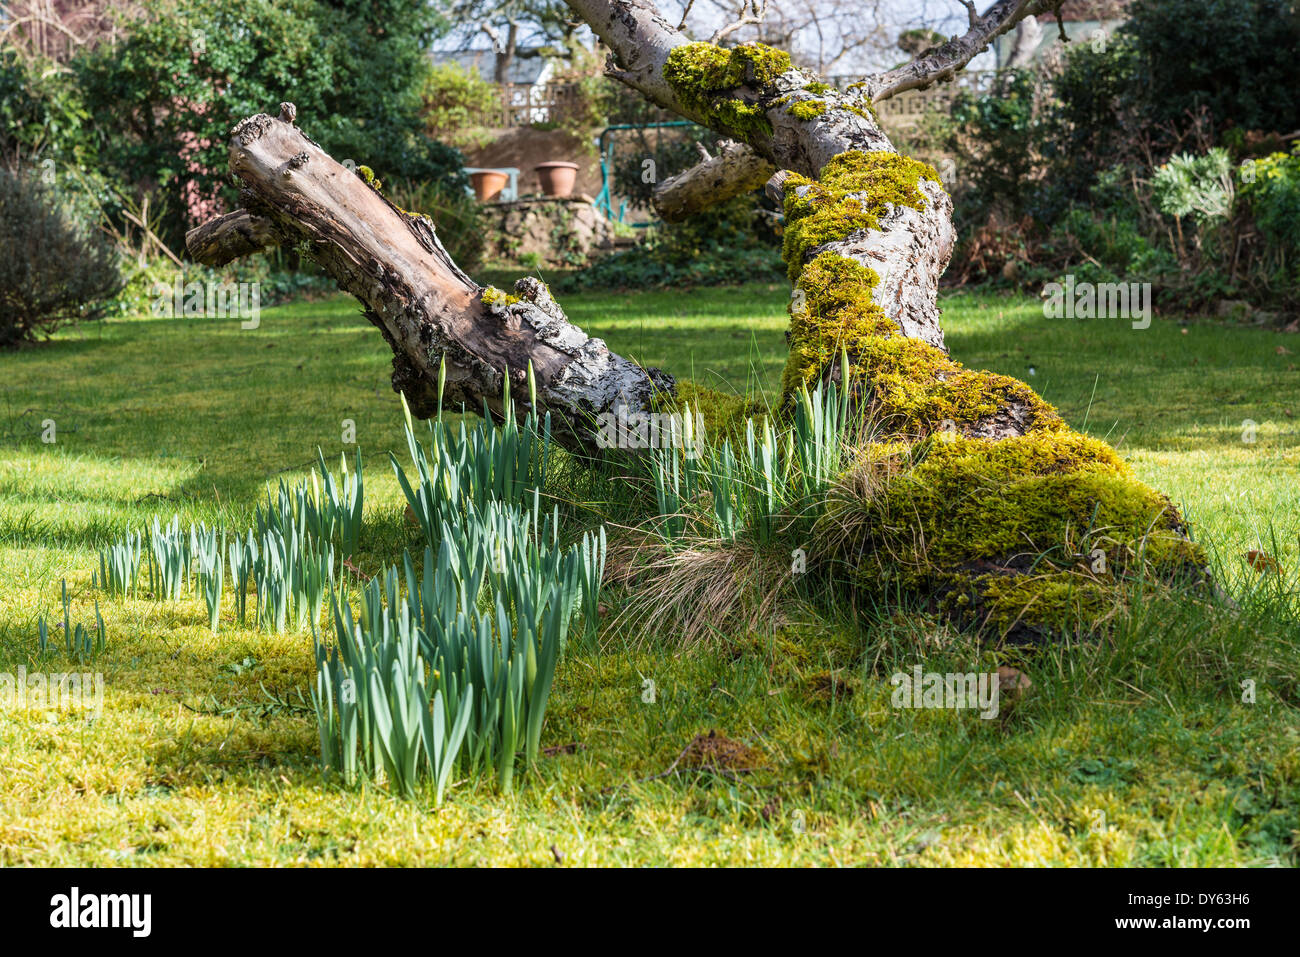 Daffodils growing in garden under old apple tree in spring. Second of sequence of 10 (ten) images photographed over five weeks. - Stock Image